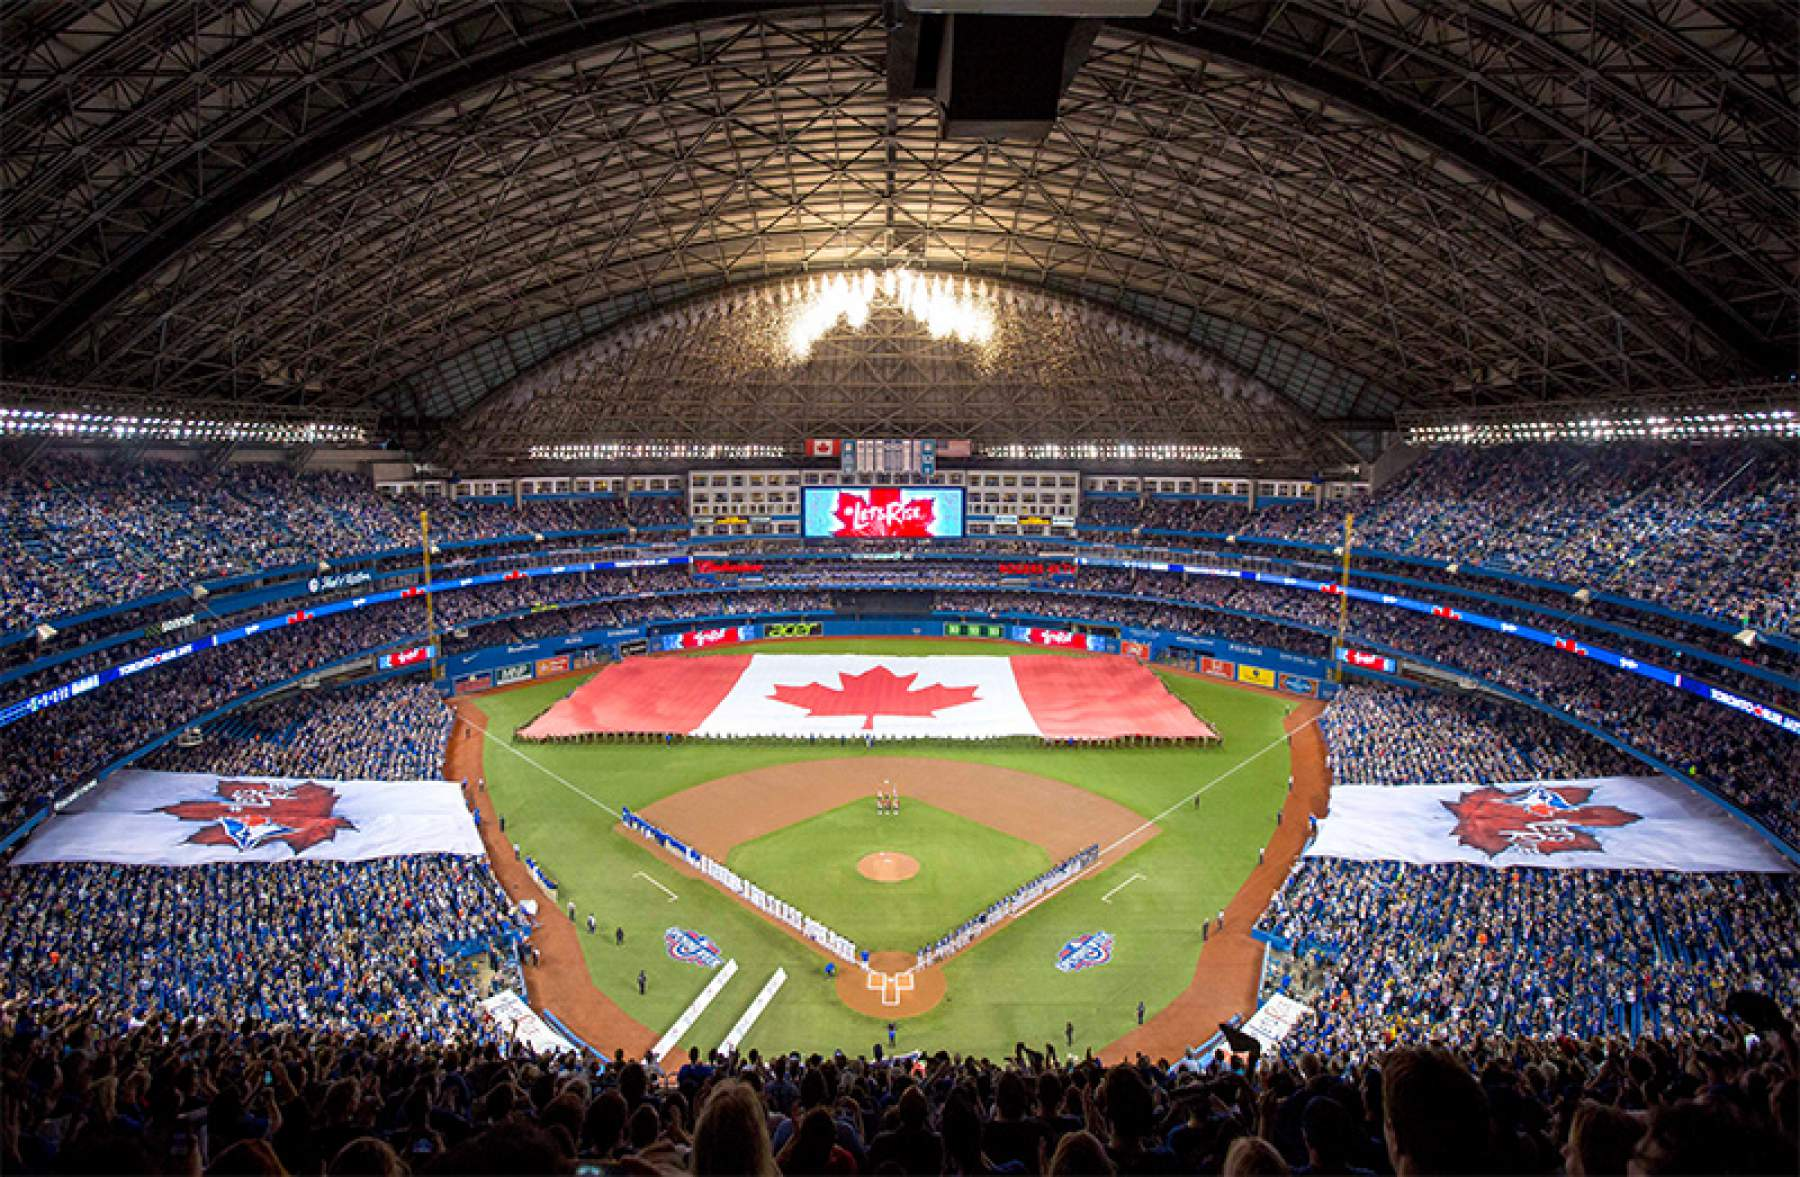 The Blue Jays at Rogers Centre in Toronto